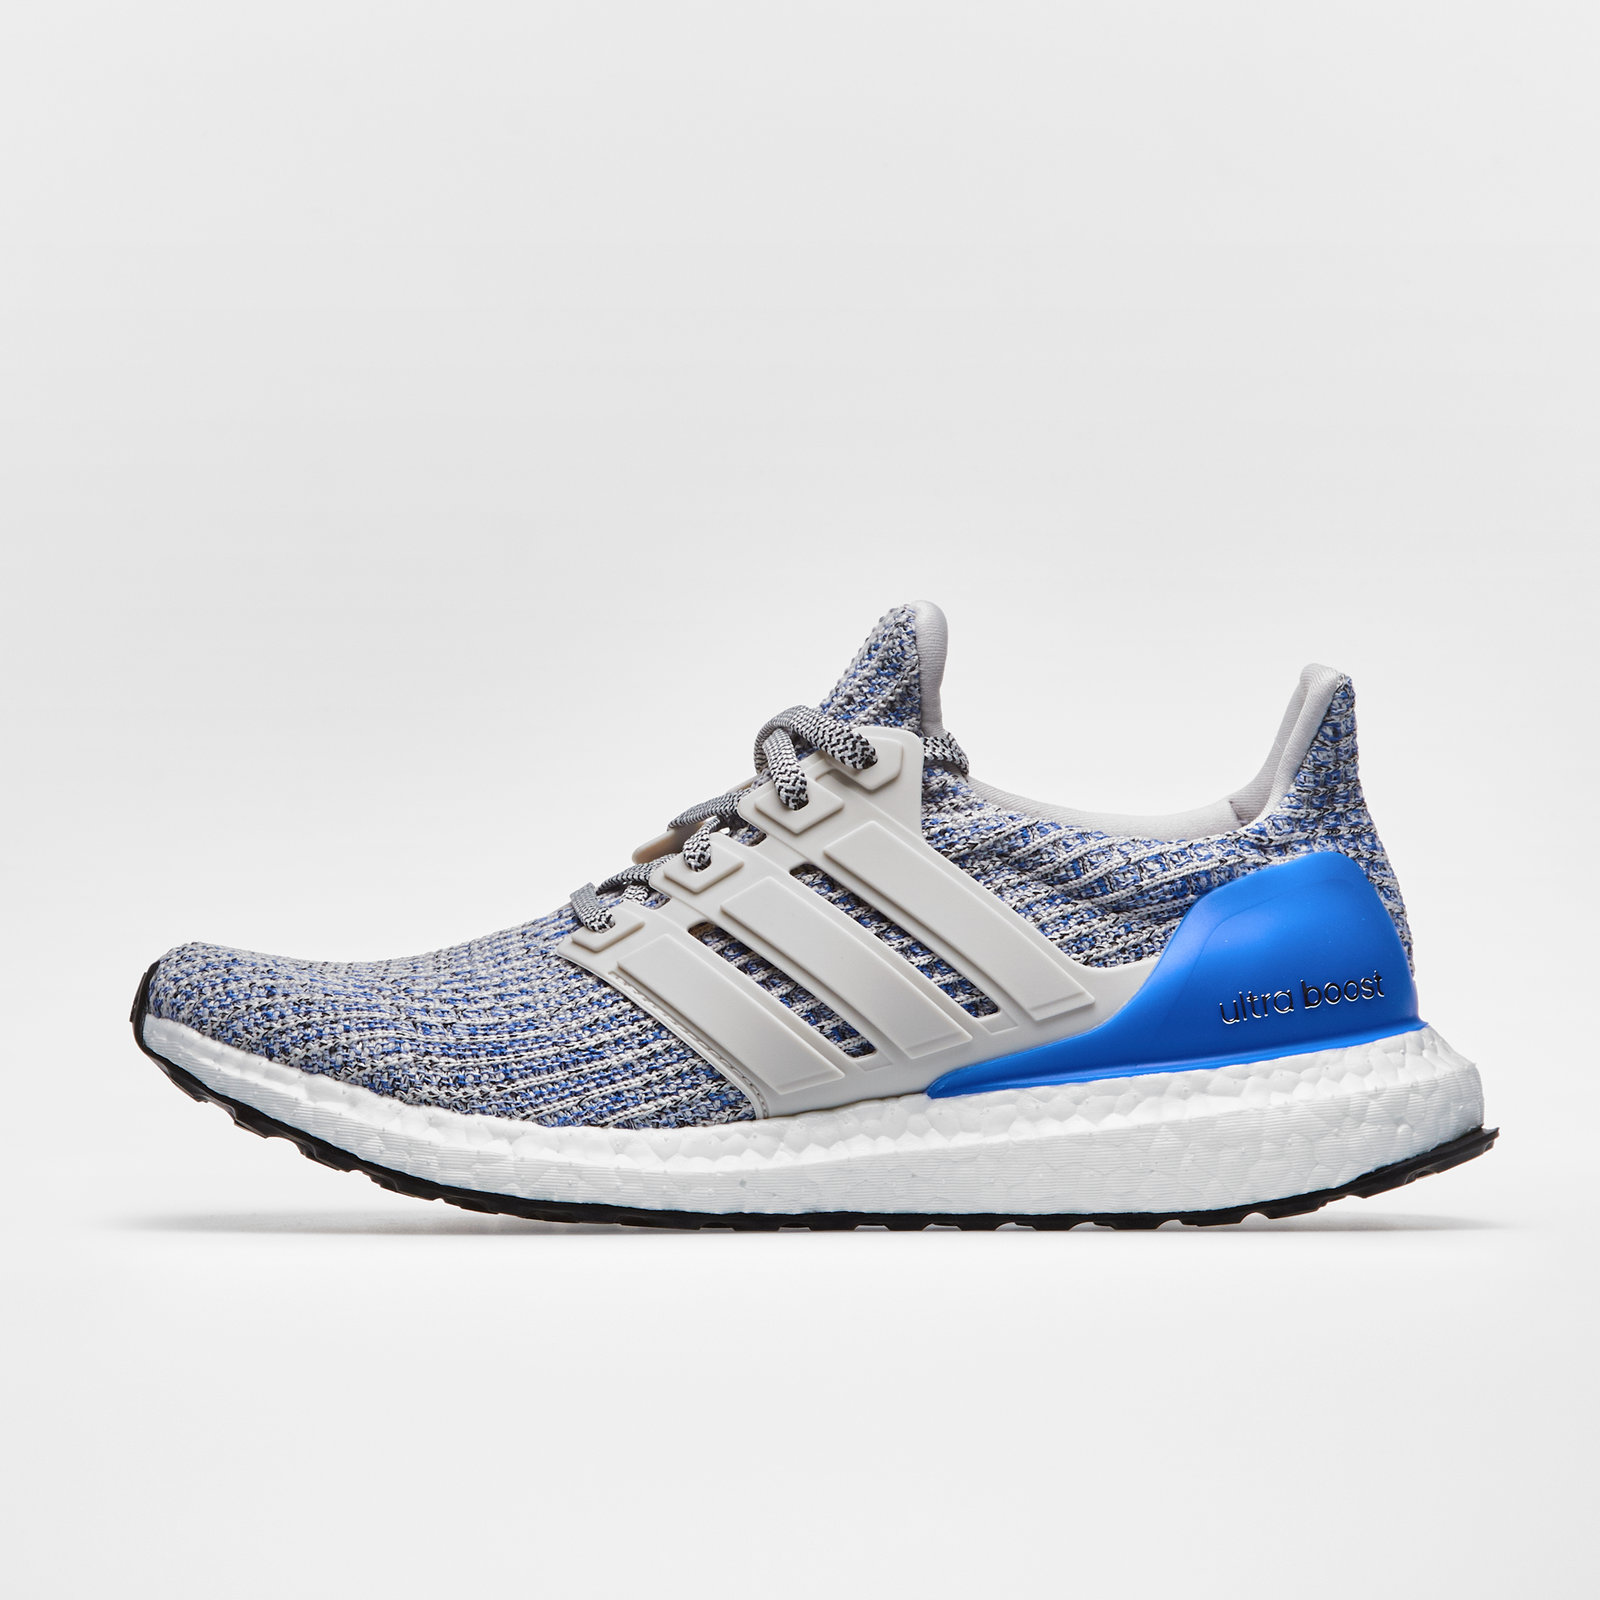 the best attitude 0795e 81683 Details about adidas Mens Ultra Boost 4.0 Running Shoes Sports Trainers  White Footwear